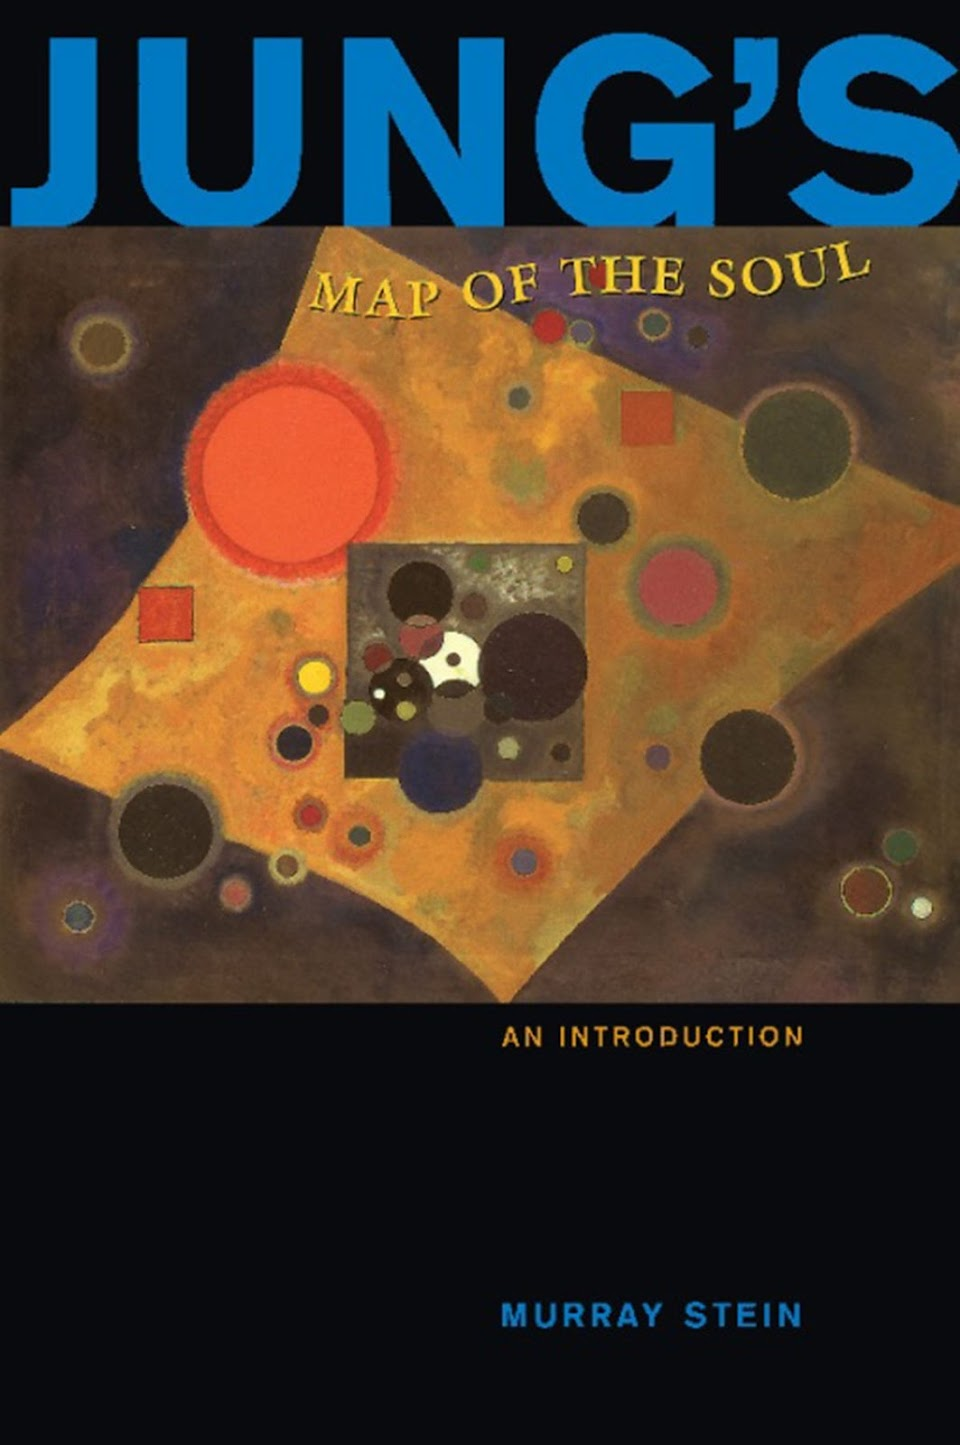 jung-s-map-of-the-soul-2